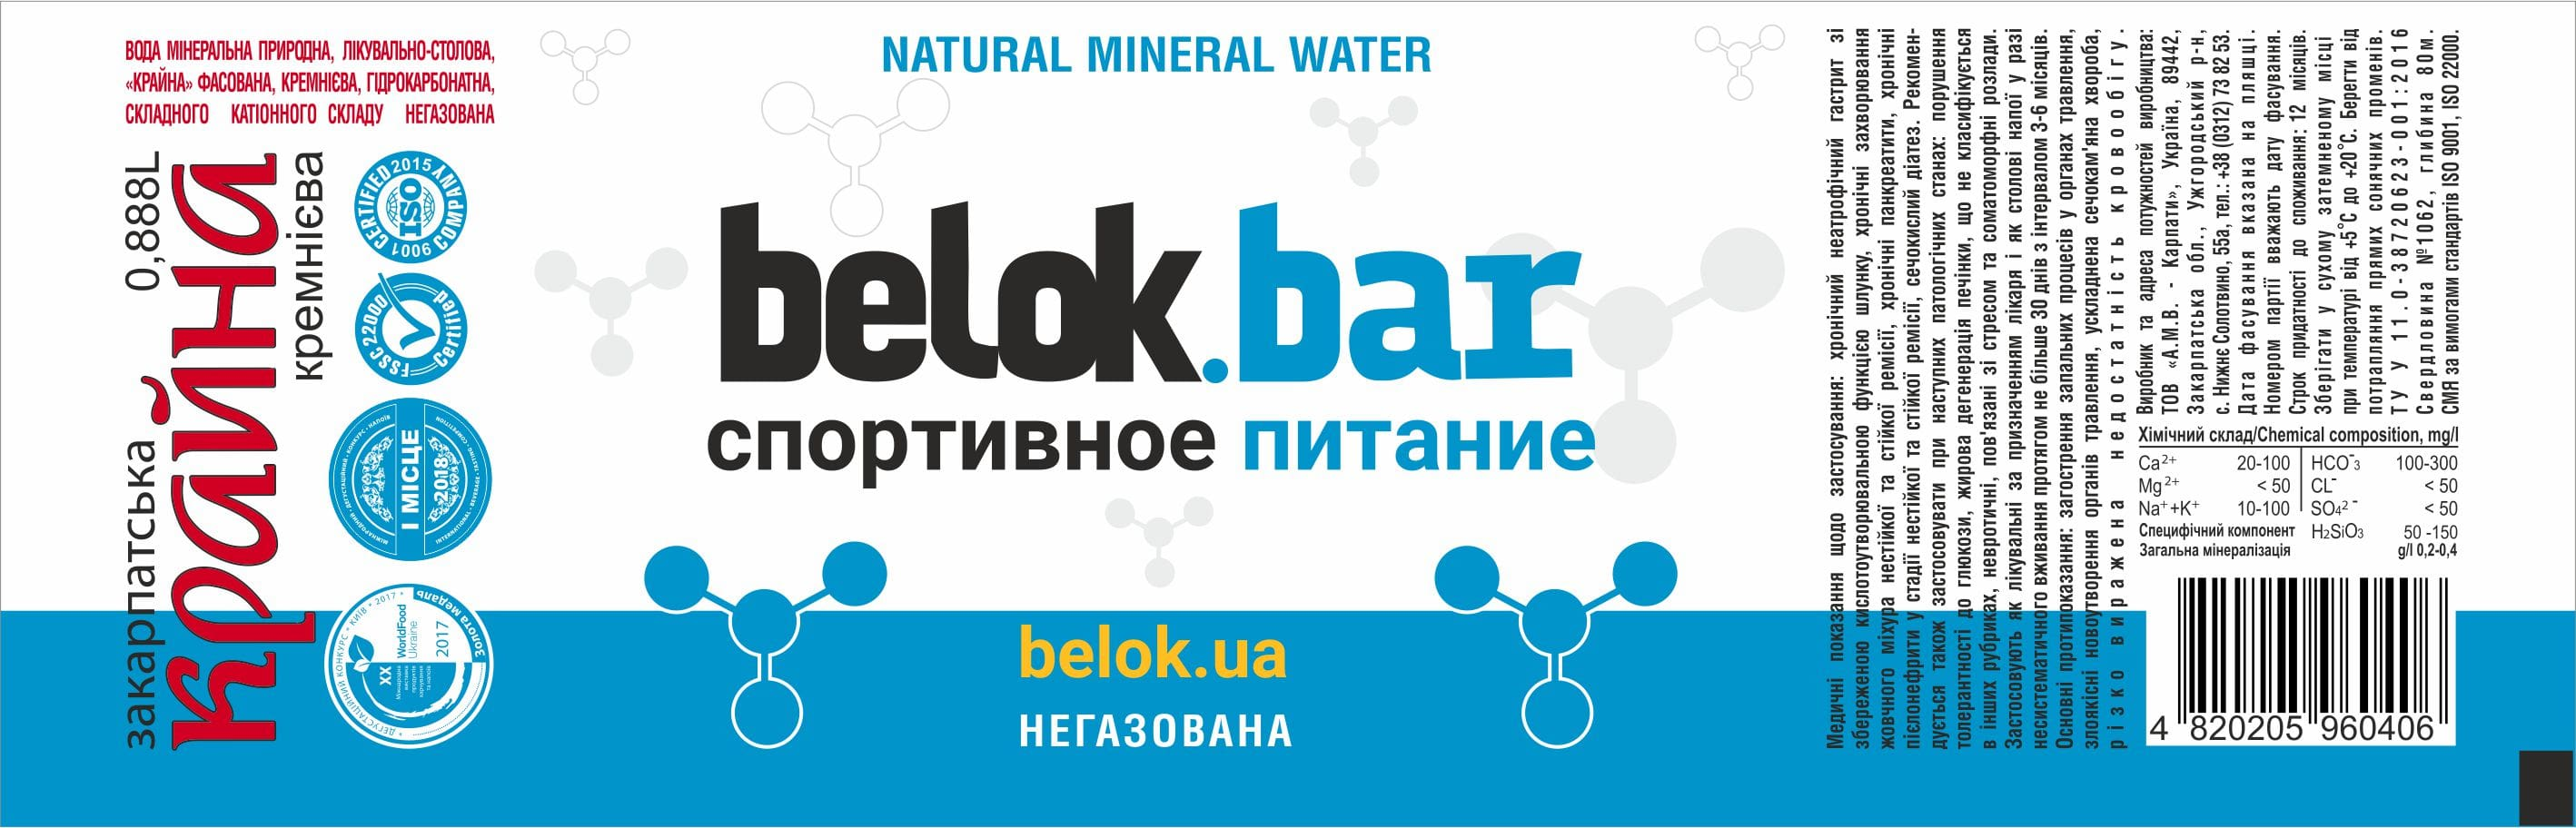 Belok Bar Private Label Wild Fitness Water